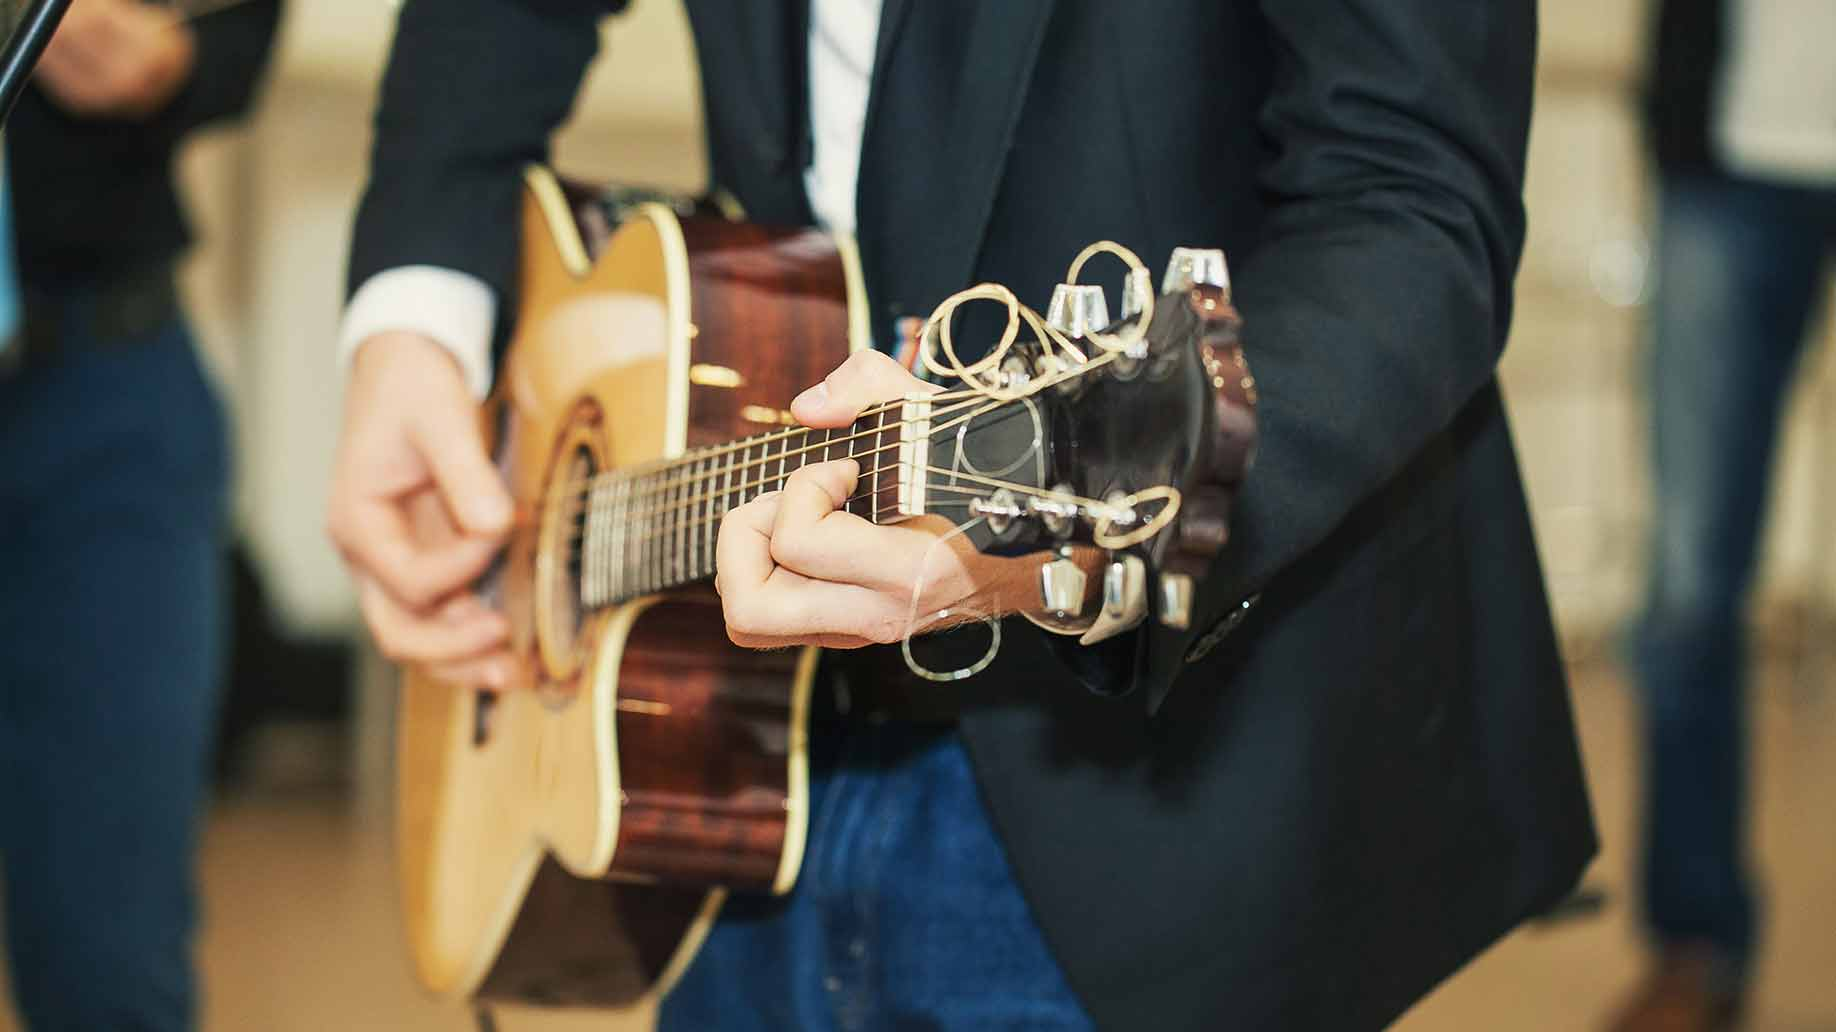 live wedding music band cost hire prices wedding band prices How Much Does a Live Wedding Music Band Cost Hire Prices